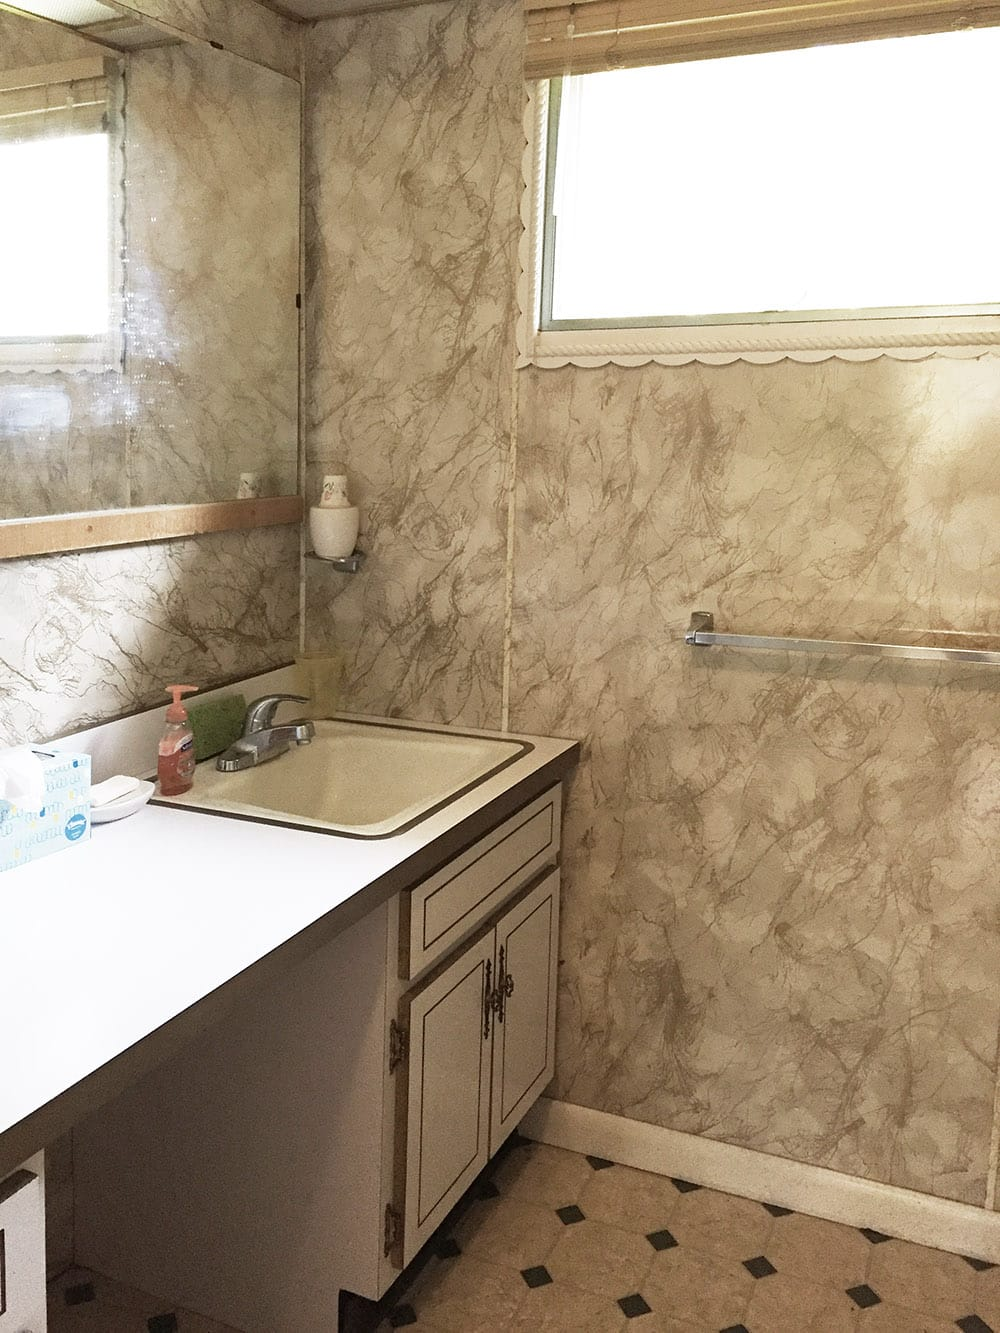 Nudist Vacation Rental – Bathroom Vanity